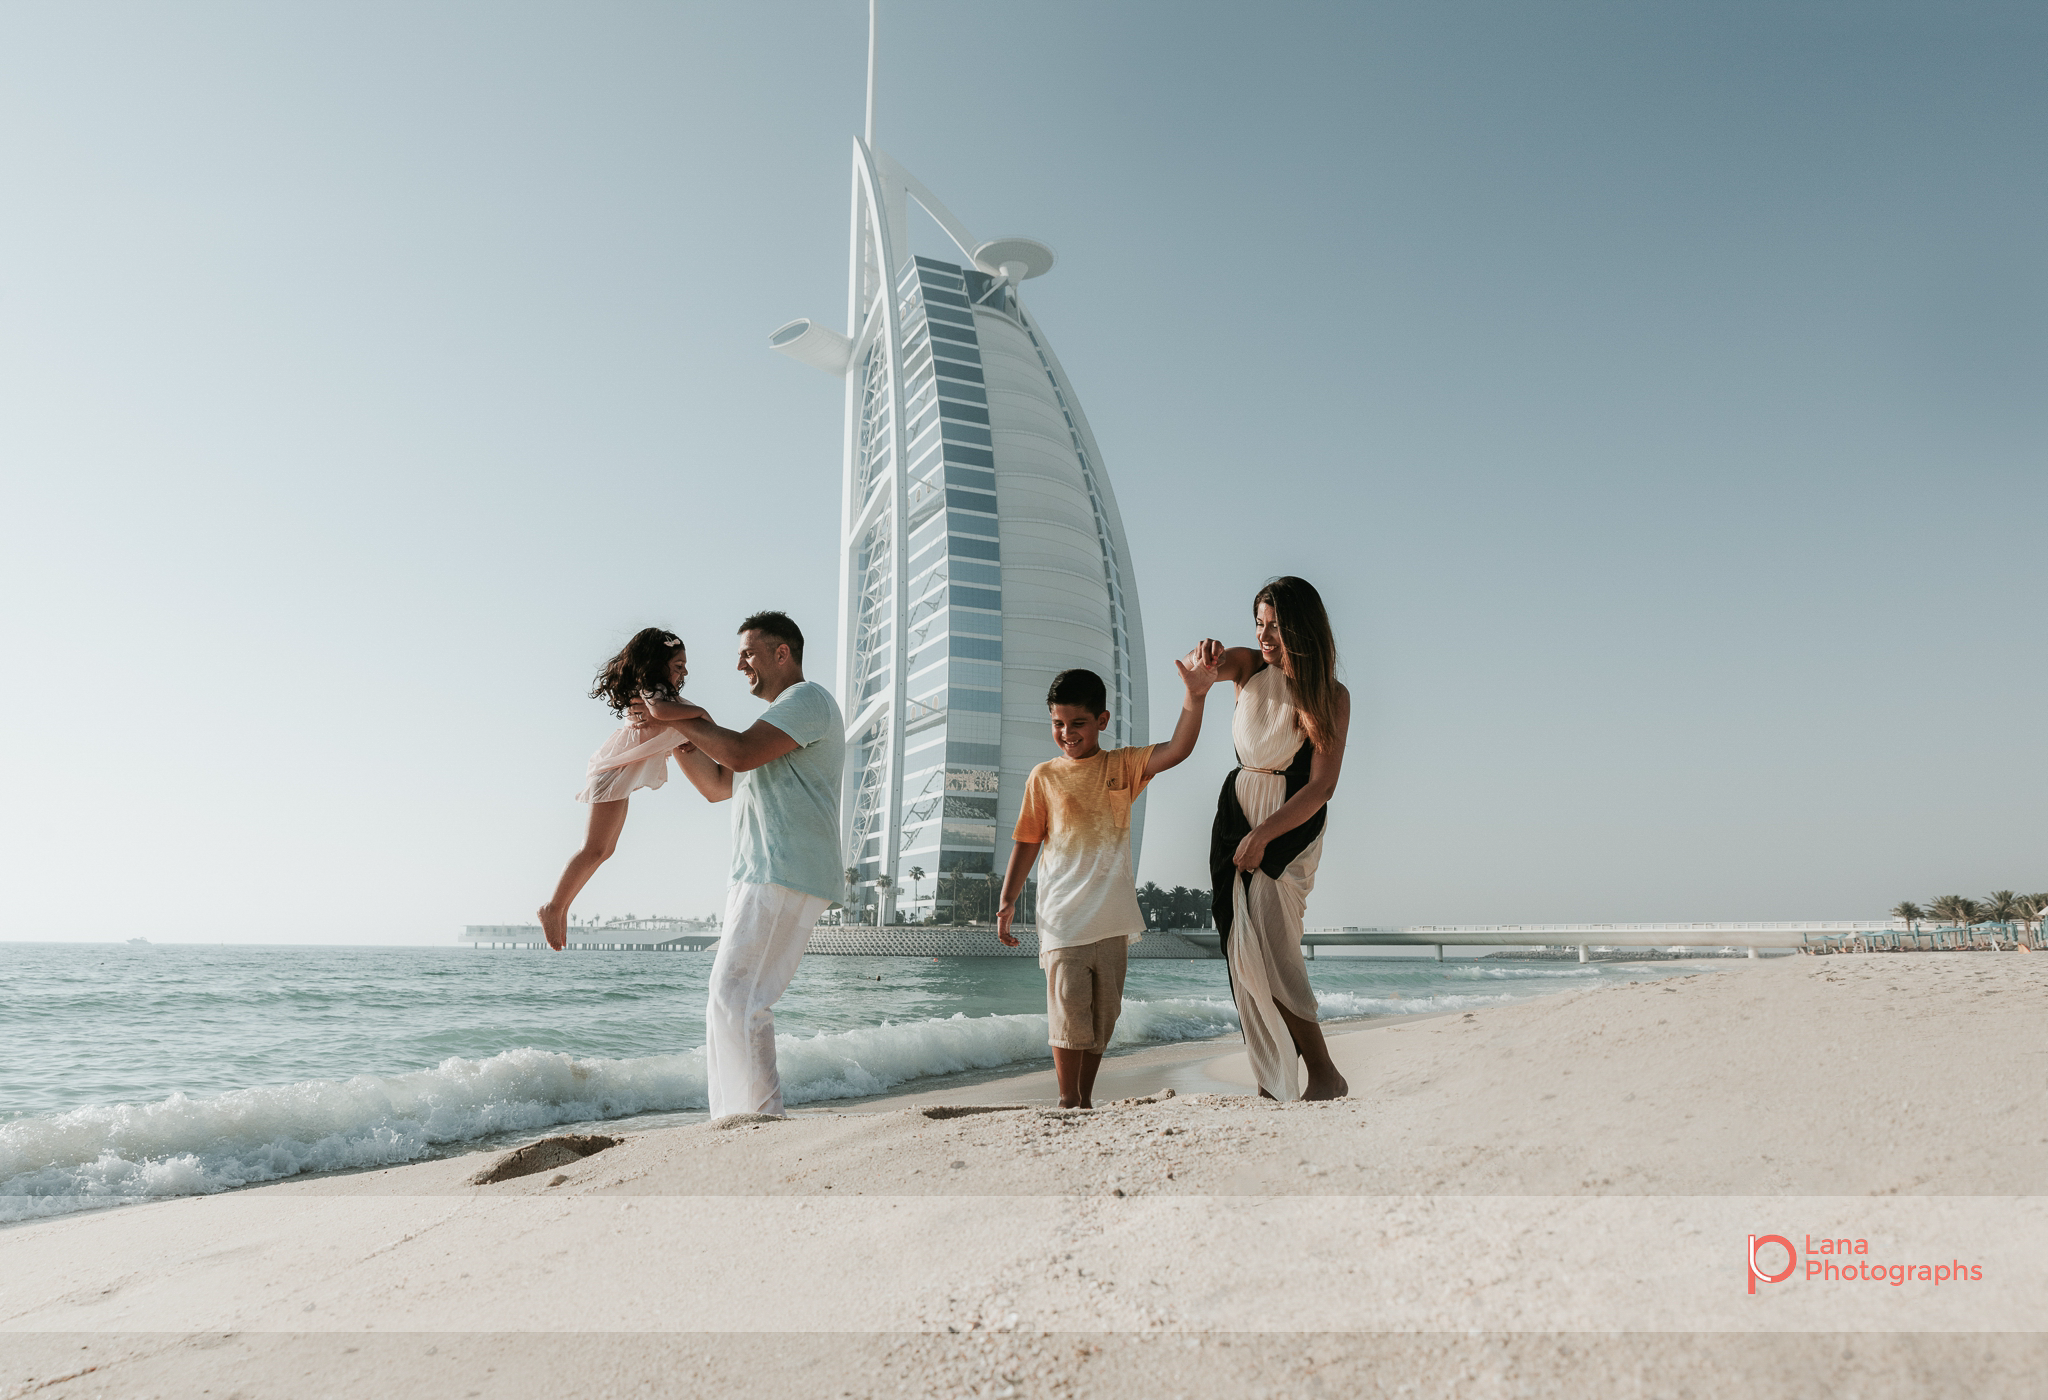 Lana Photographs Dubai Family Photography beach photoshoot family shot with burj al arab in the background